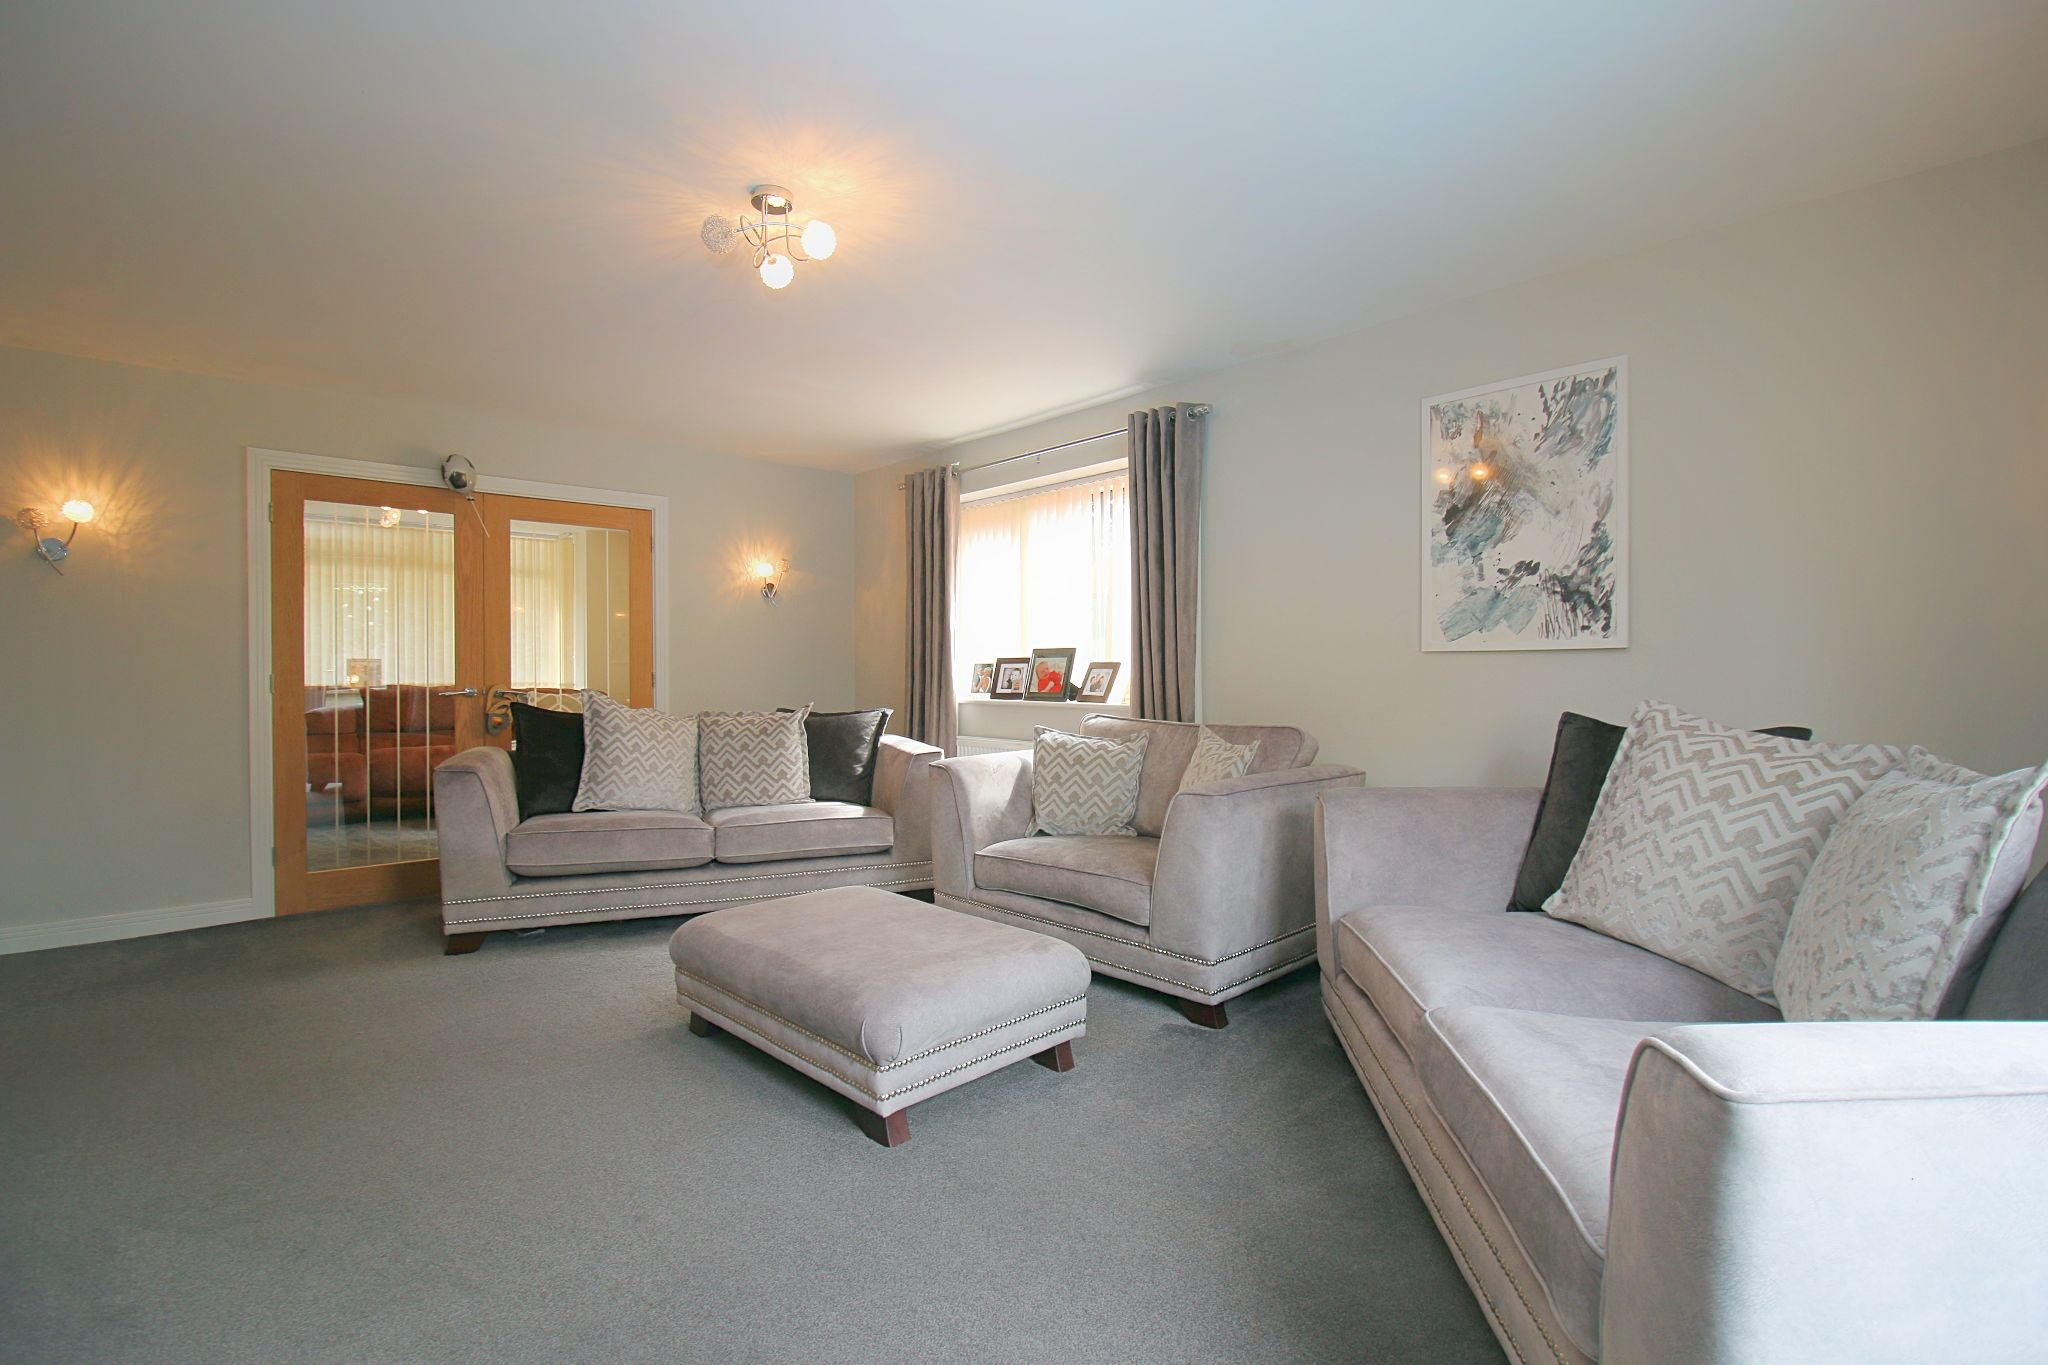 6 Bedroom Detached House For Sale - Photograph 8